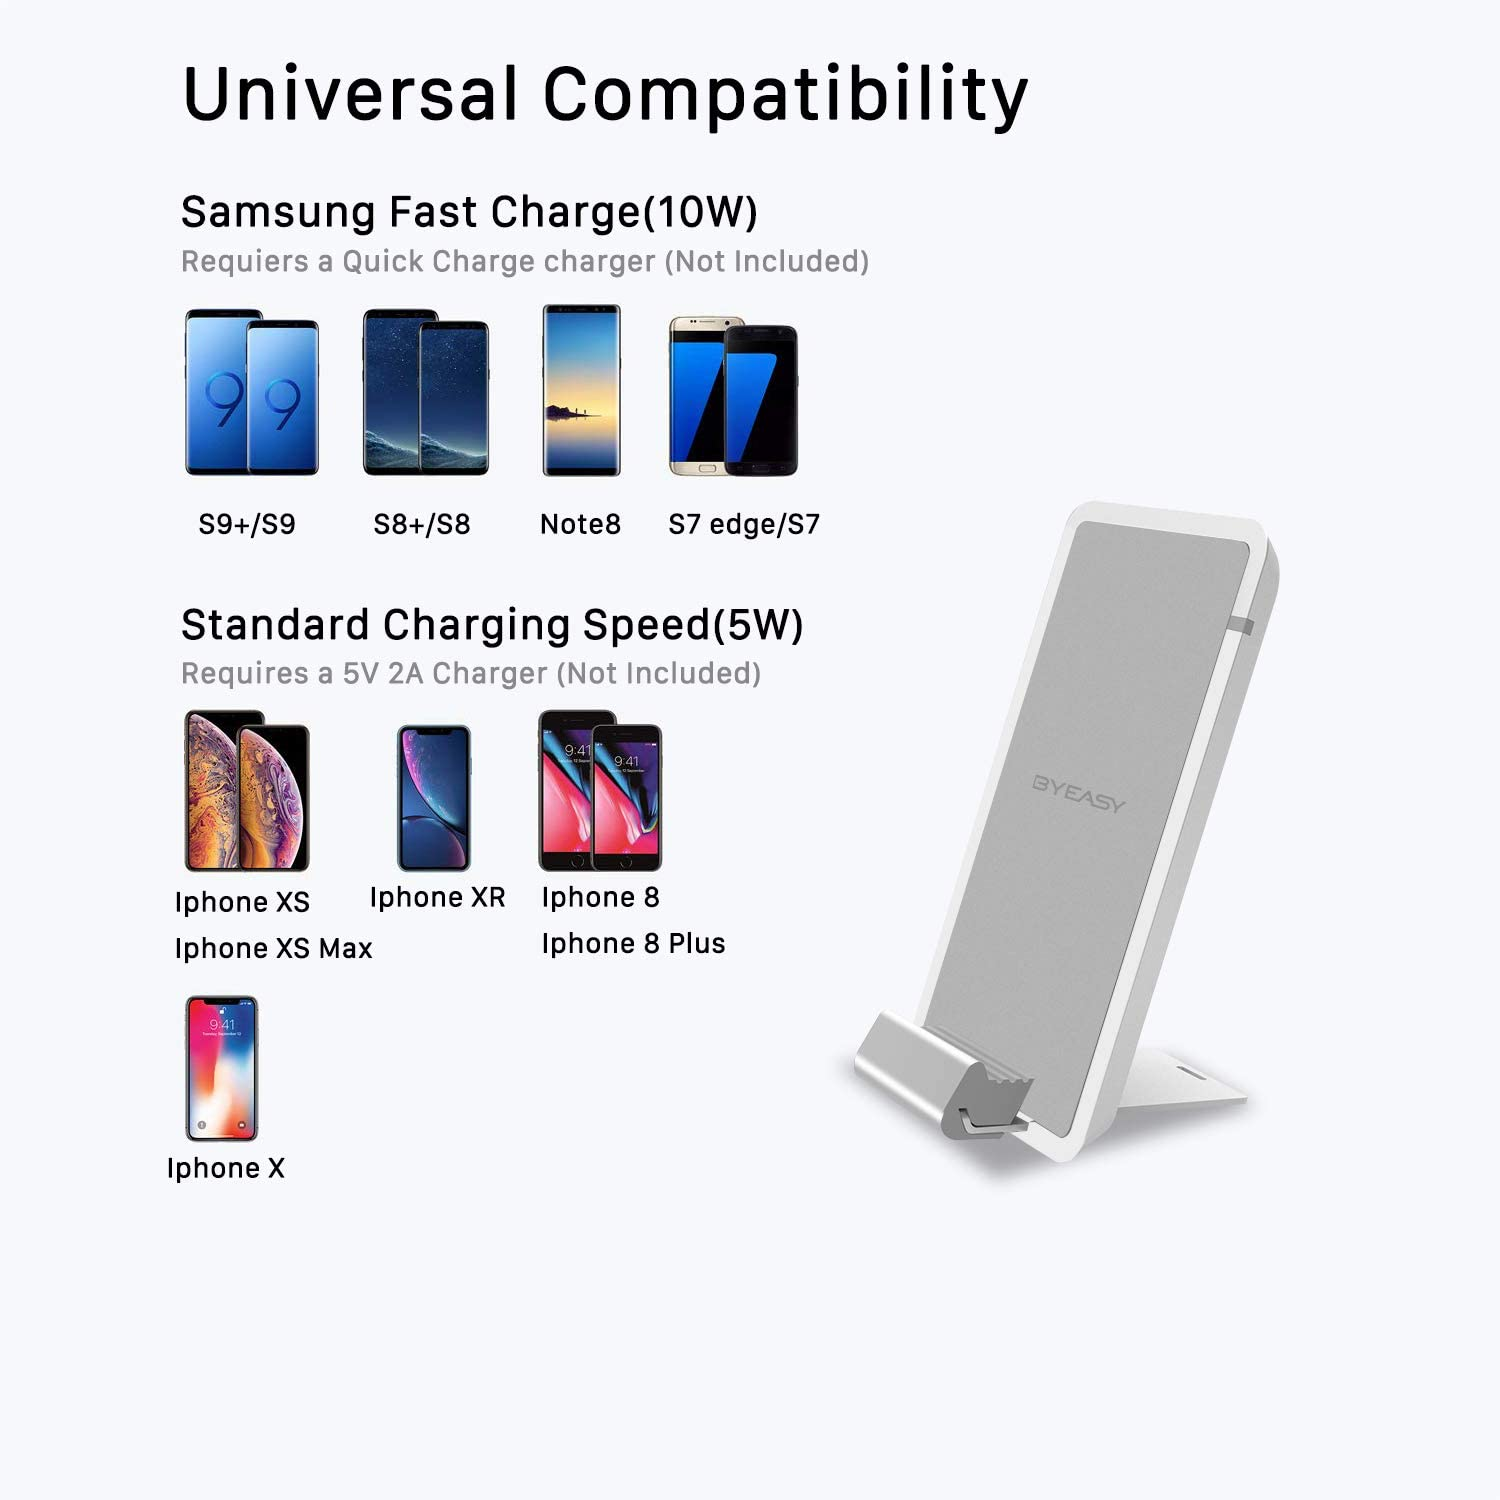 BYEASY Wireless Charger, 10W Wireless Charging Stand, Compatible iPhone XR/Xs Max/XS/X/8/8 Plus, Fast-Charging Galaxy S10/S9/S9+/S8/S8+/Note 9/Note 8, ...